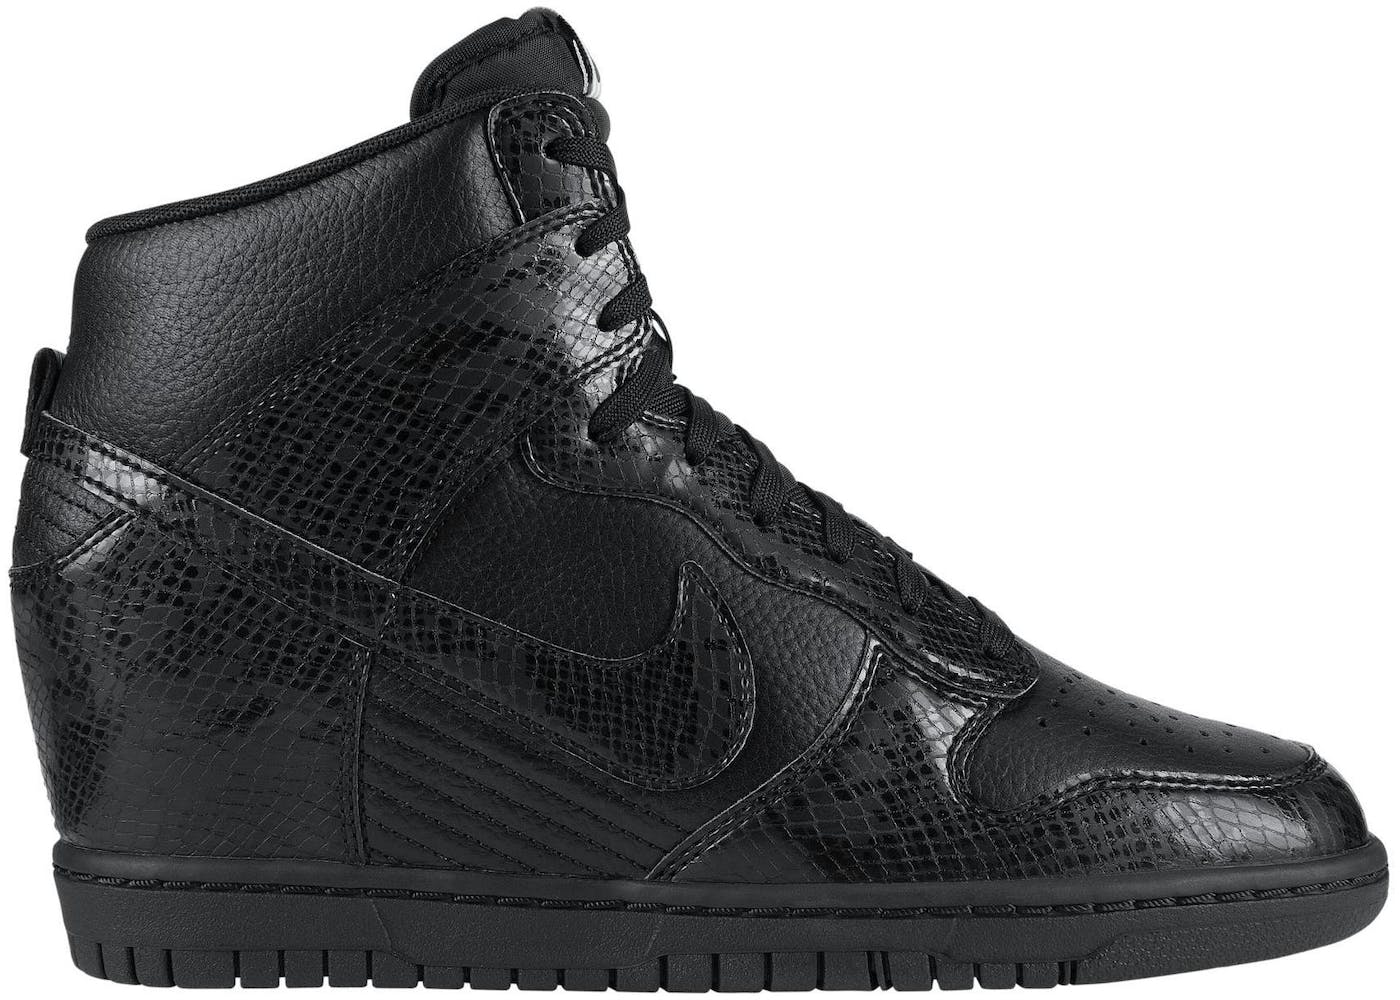 huge selection of 1acce 21147 ... Nike Dunk High Sky Hi Black Leather Snake (GS) ...